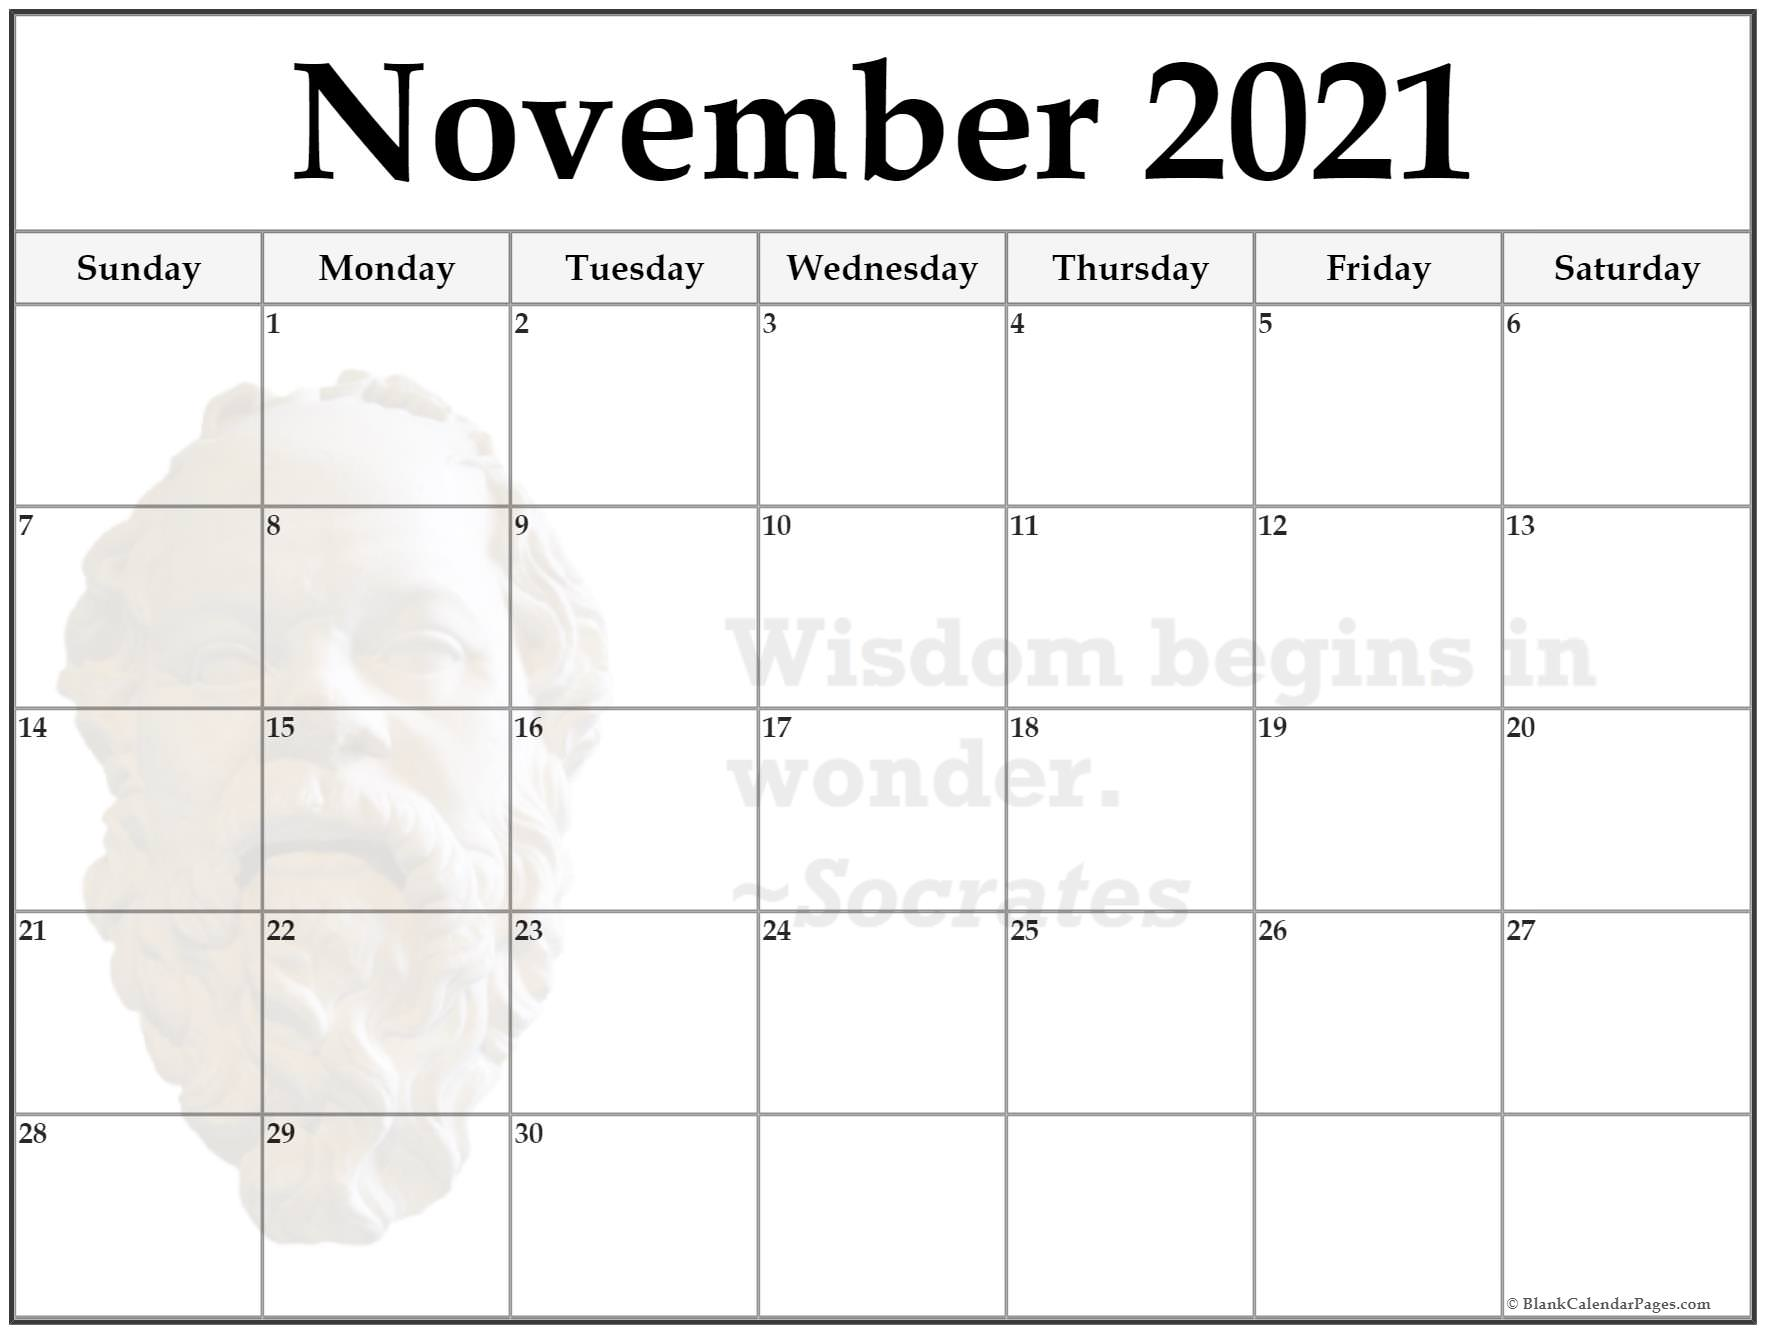 November 2019 monthly quote calendar template. Wisdom begins in wonder. ~Socrates